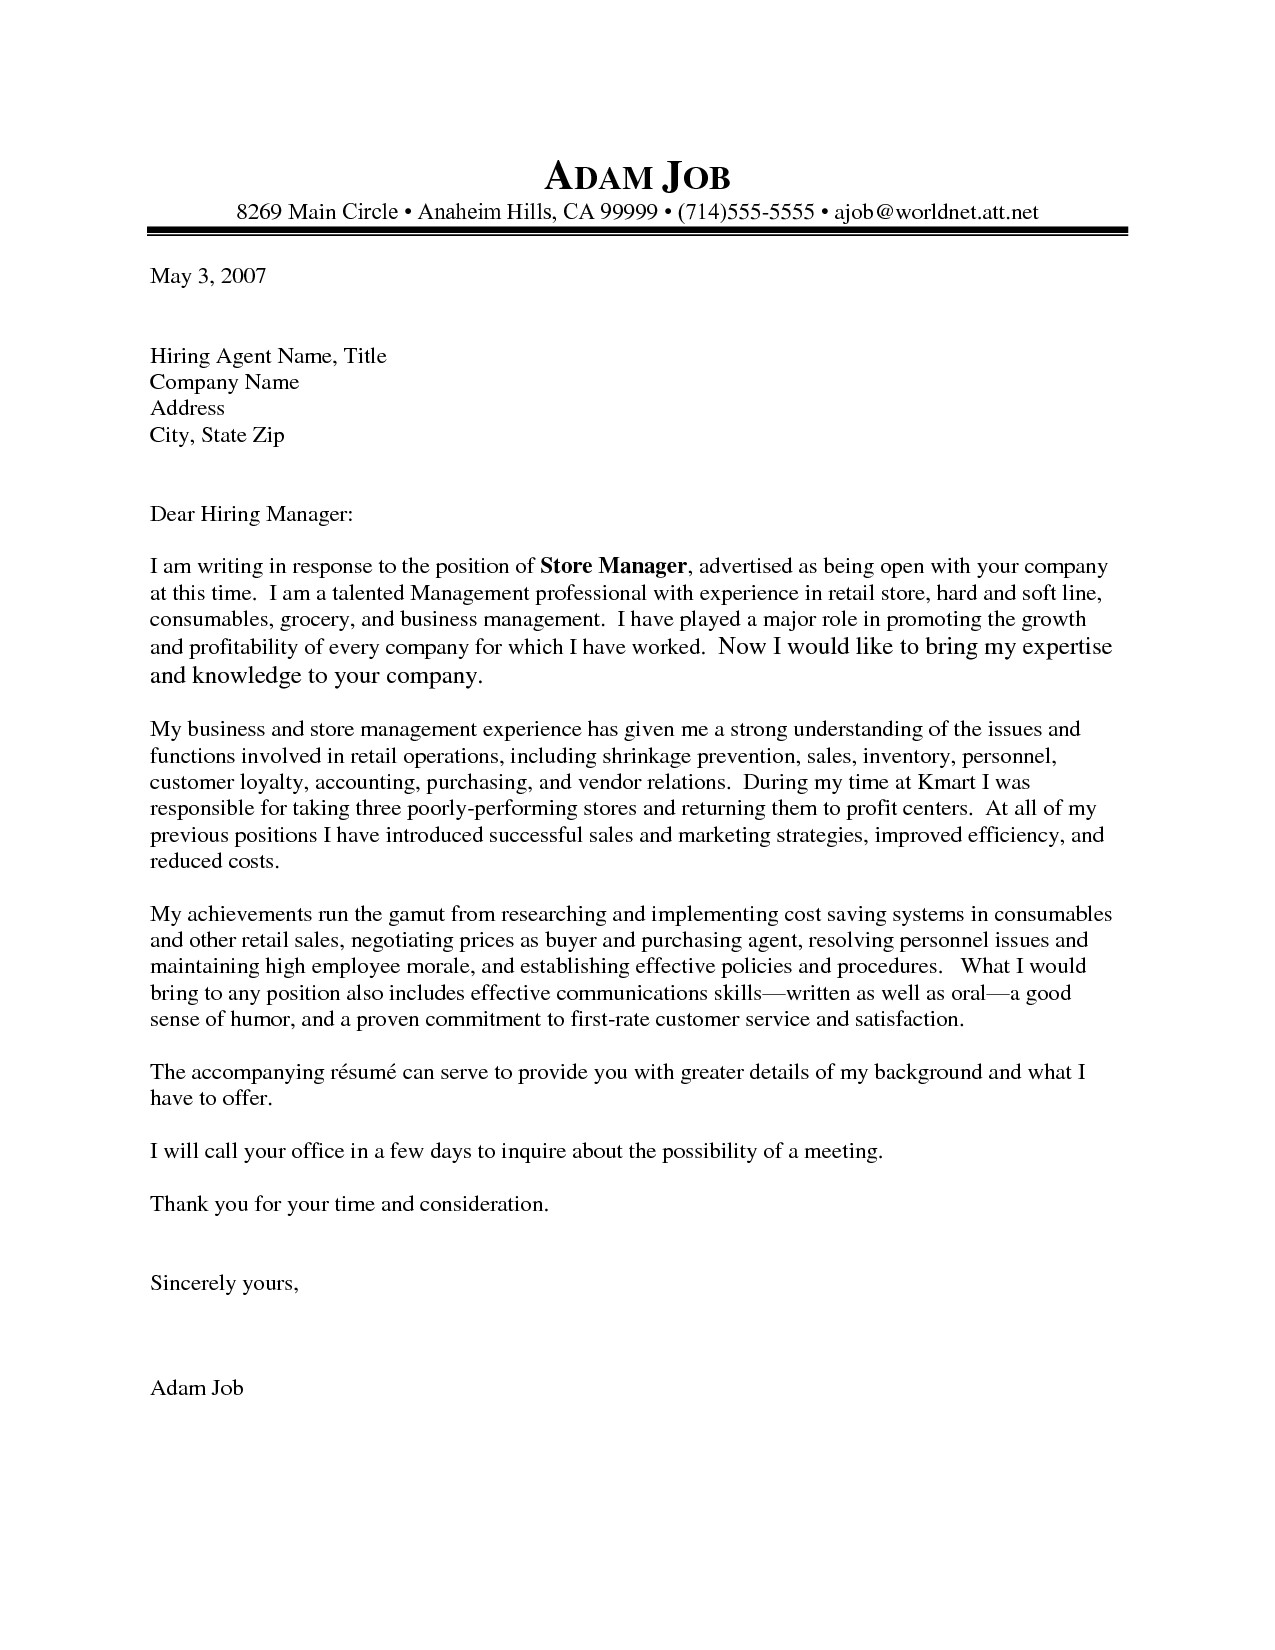 Warehouse Manager Cover Letter Template Collection | Letter Template ...